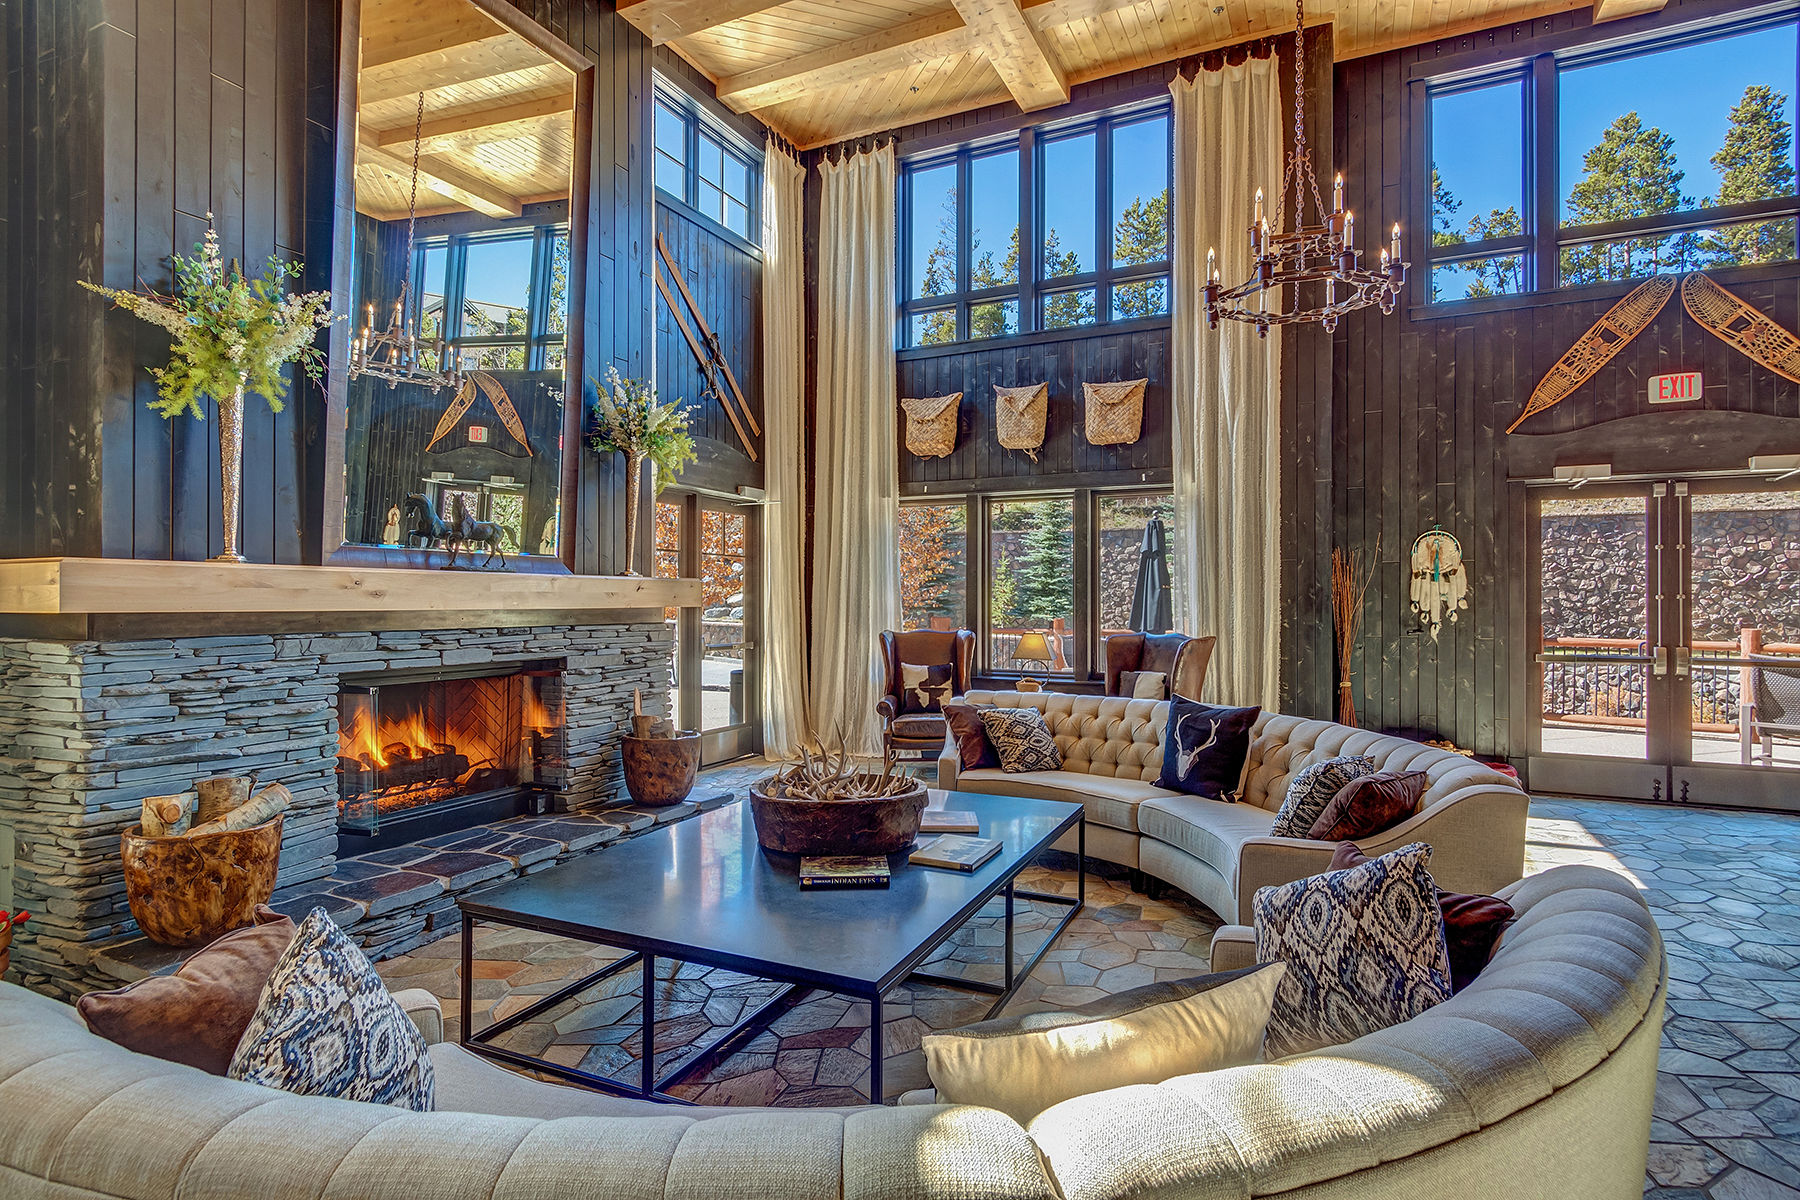 quality photos help sell your home. Blue Sky, Breckenridge, a well presented home that sold profitably